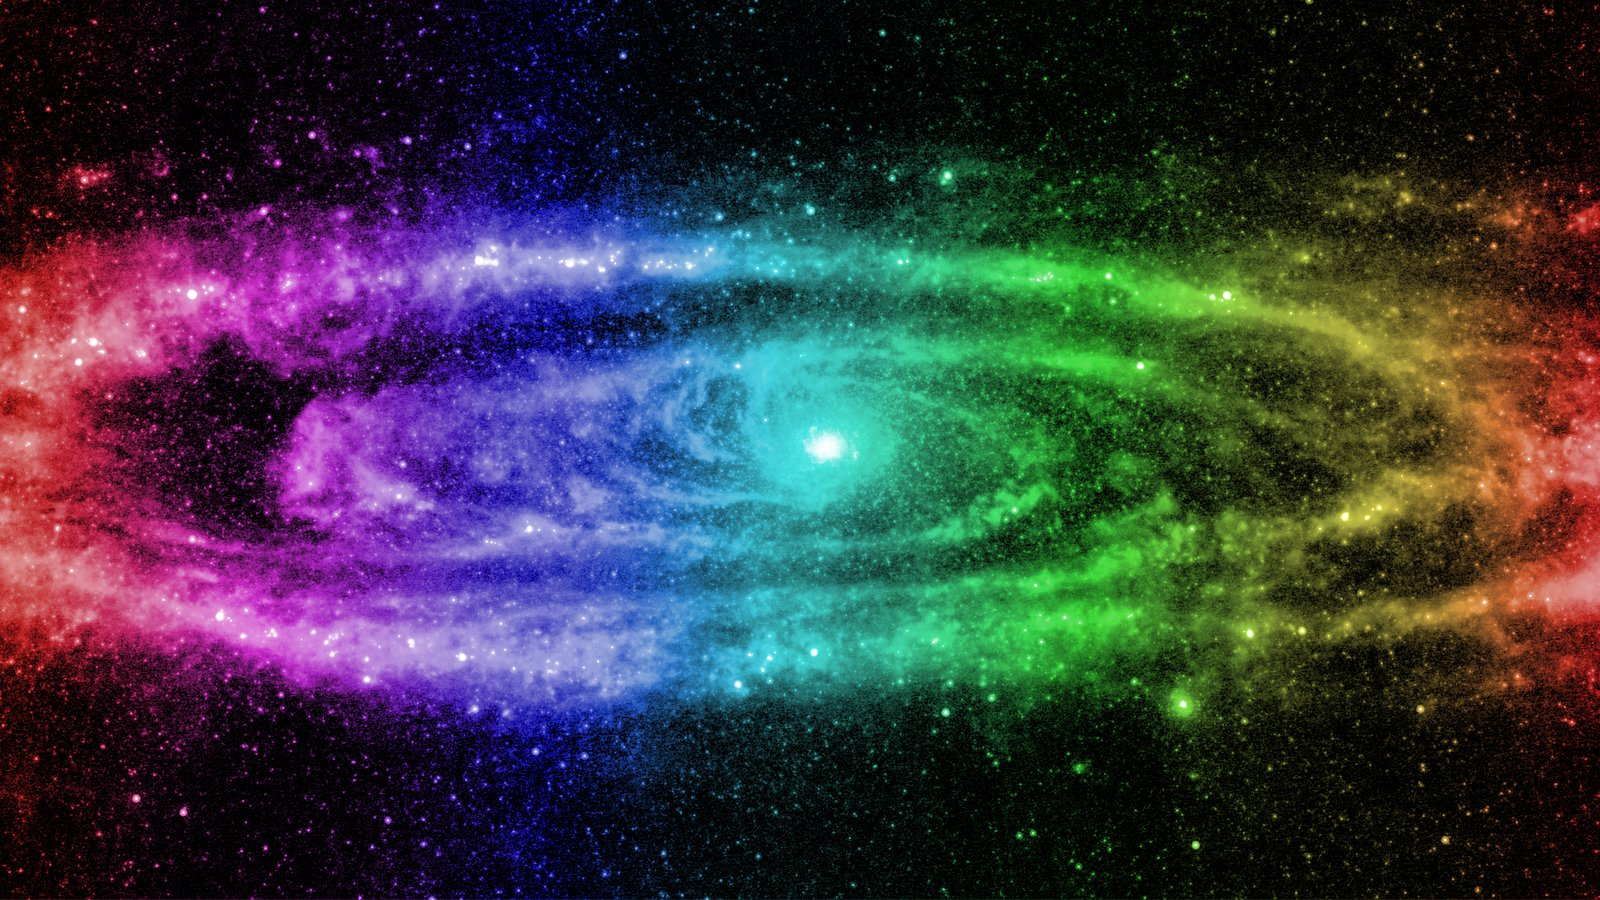 Sick Wallpapers For Iphone 5 Outer Space Multicolor Wallpaper 1600x900 308643